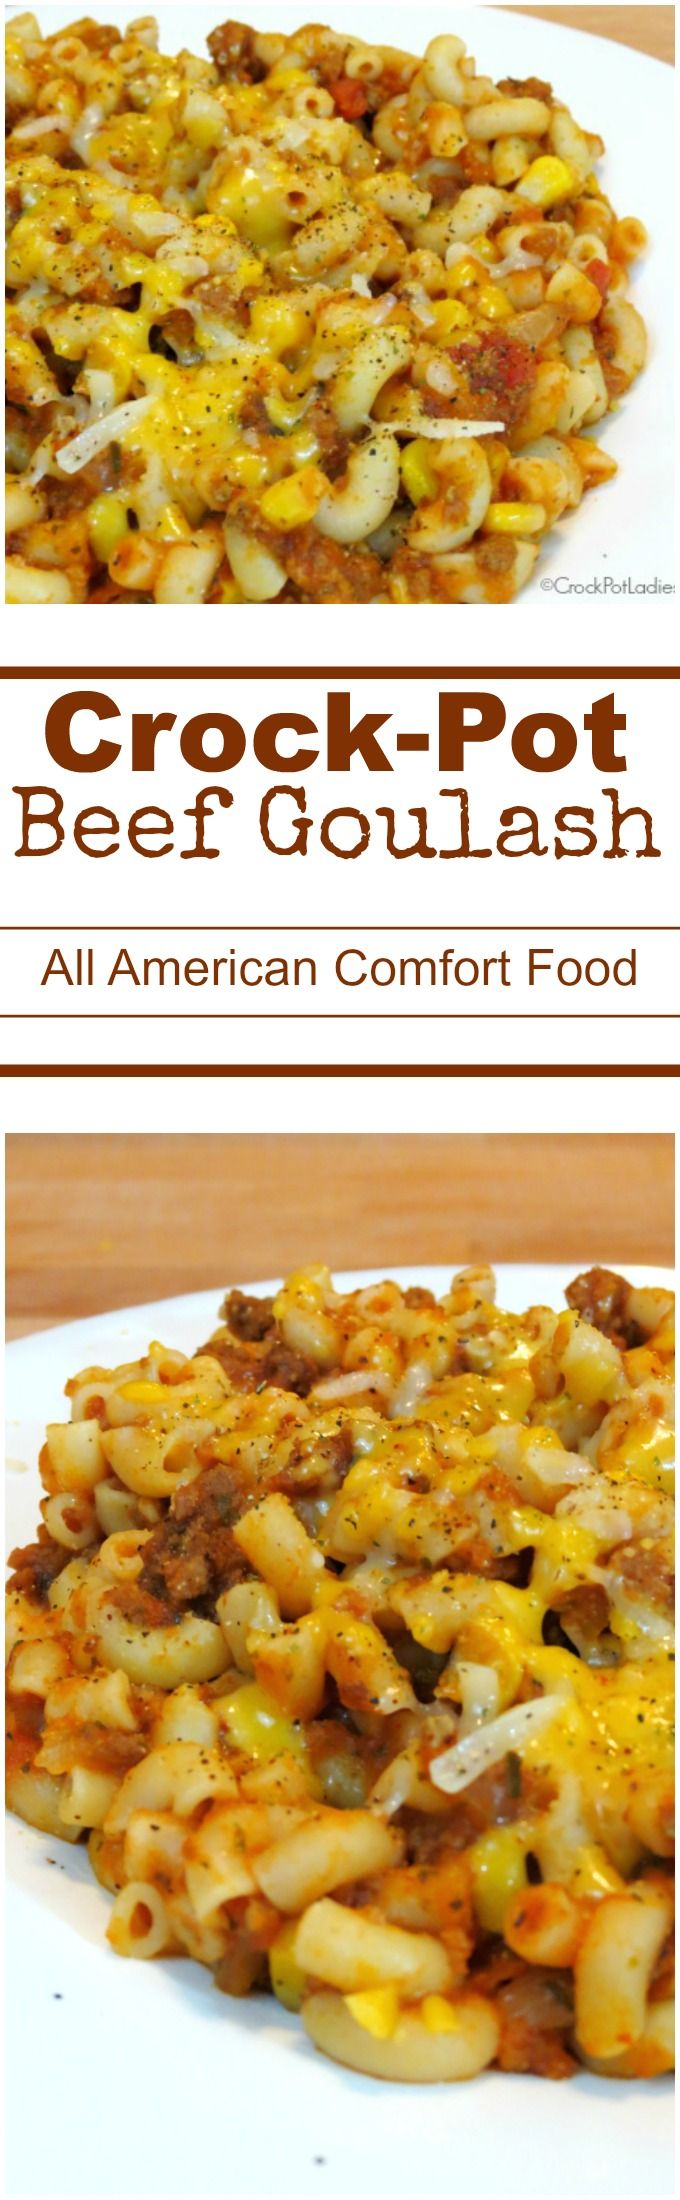 Crock-Pot Beef Goulash - Make this affordable, easy and delicious recipe for Beef Goulash in your slow cooker for good old fashioned American comfort food. Ground beef is simmered away in a tomato based sauce for several hours in the crock-pot, pasta is added at the end and it is all topped with shredded cheese for a meal the whole family will love! | #CrockPotLadies #CrockPot #SlowCooker #Recipe #ComfortFood #GroundBeef #Hamburger